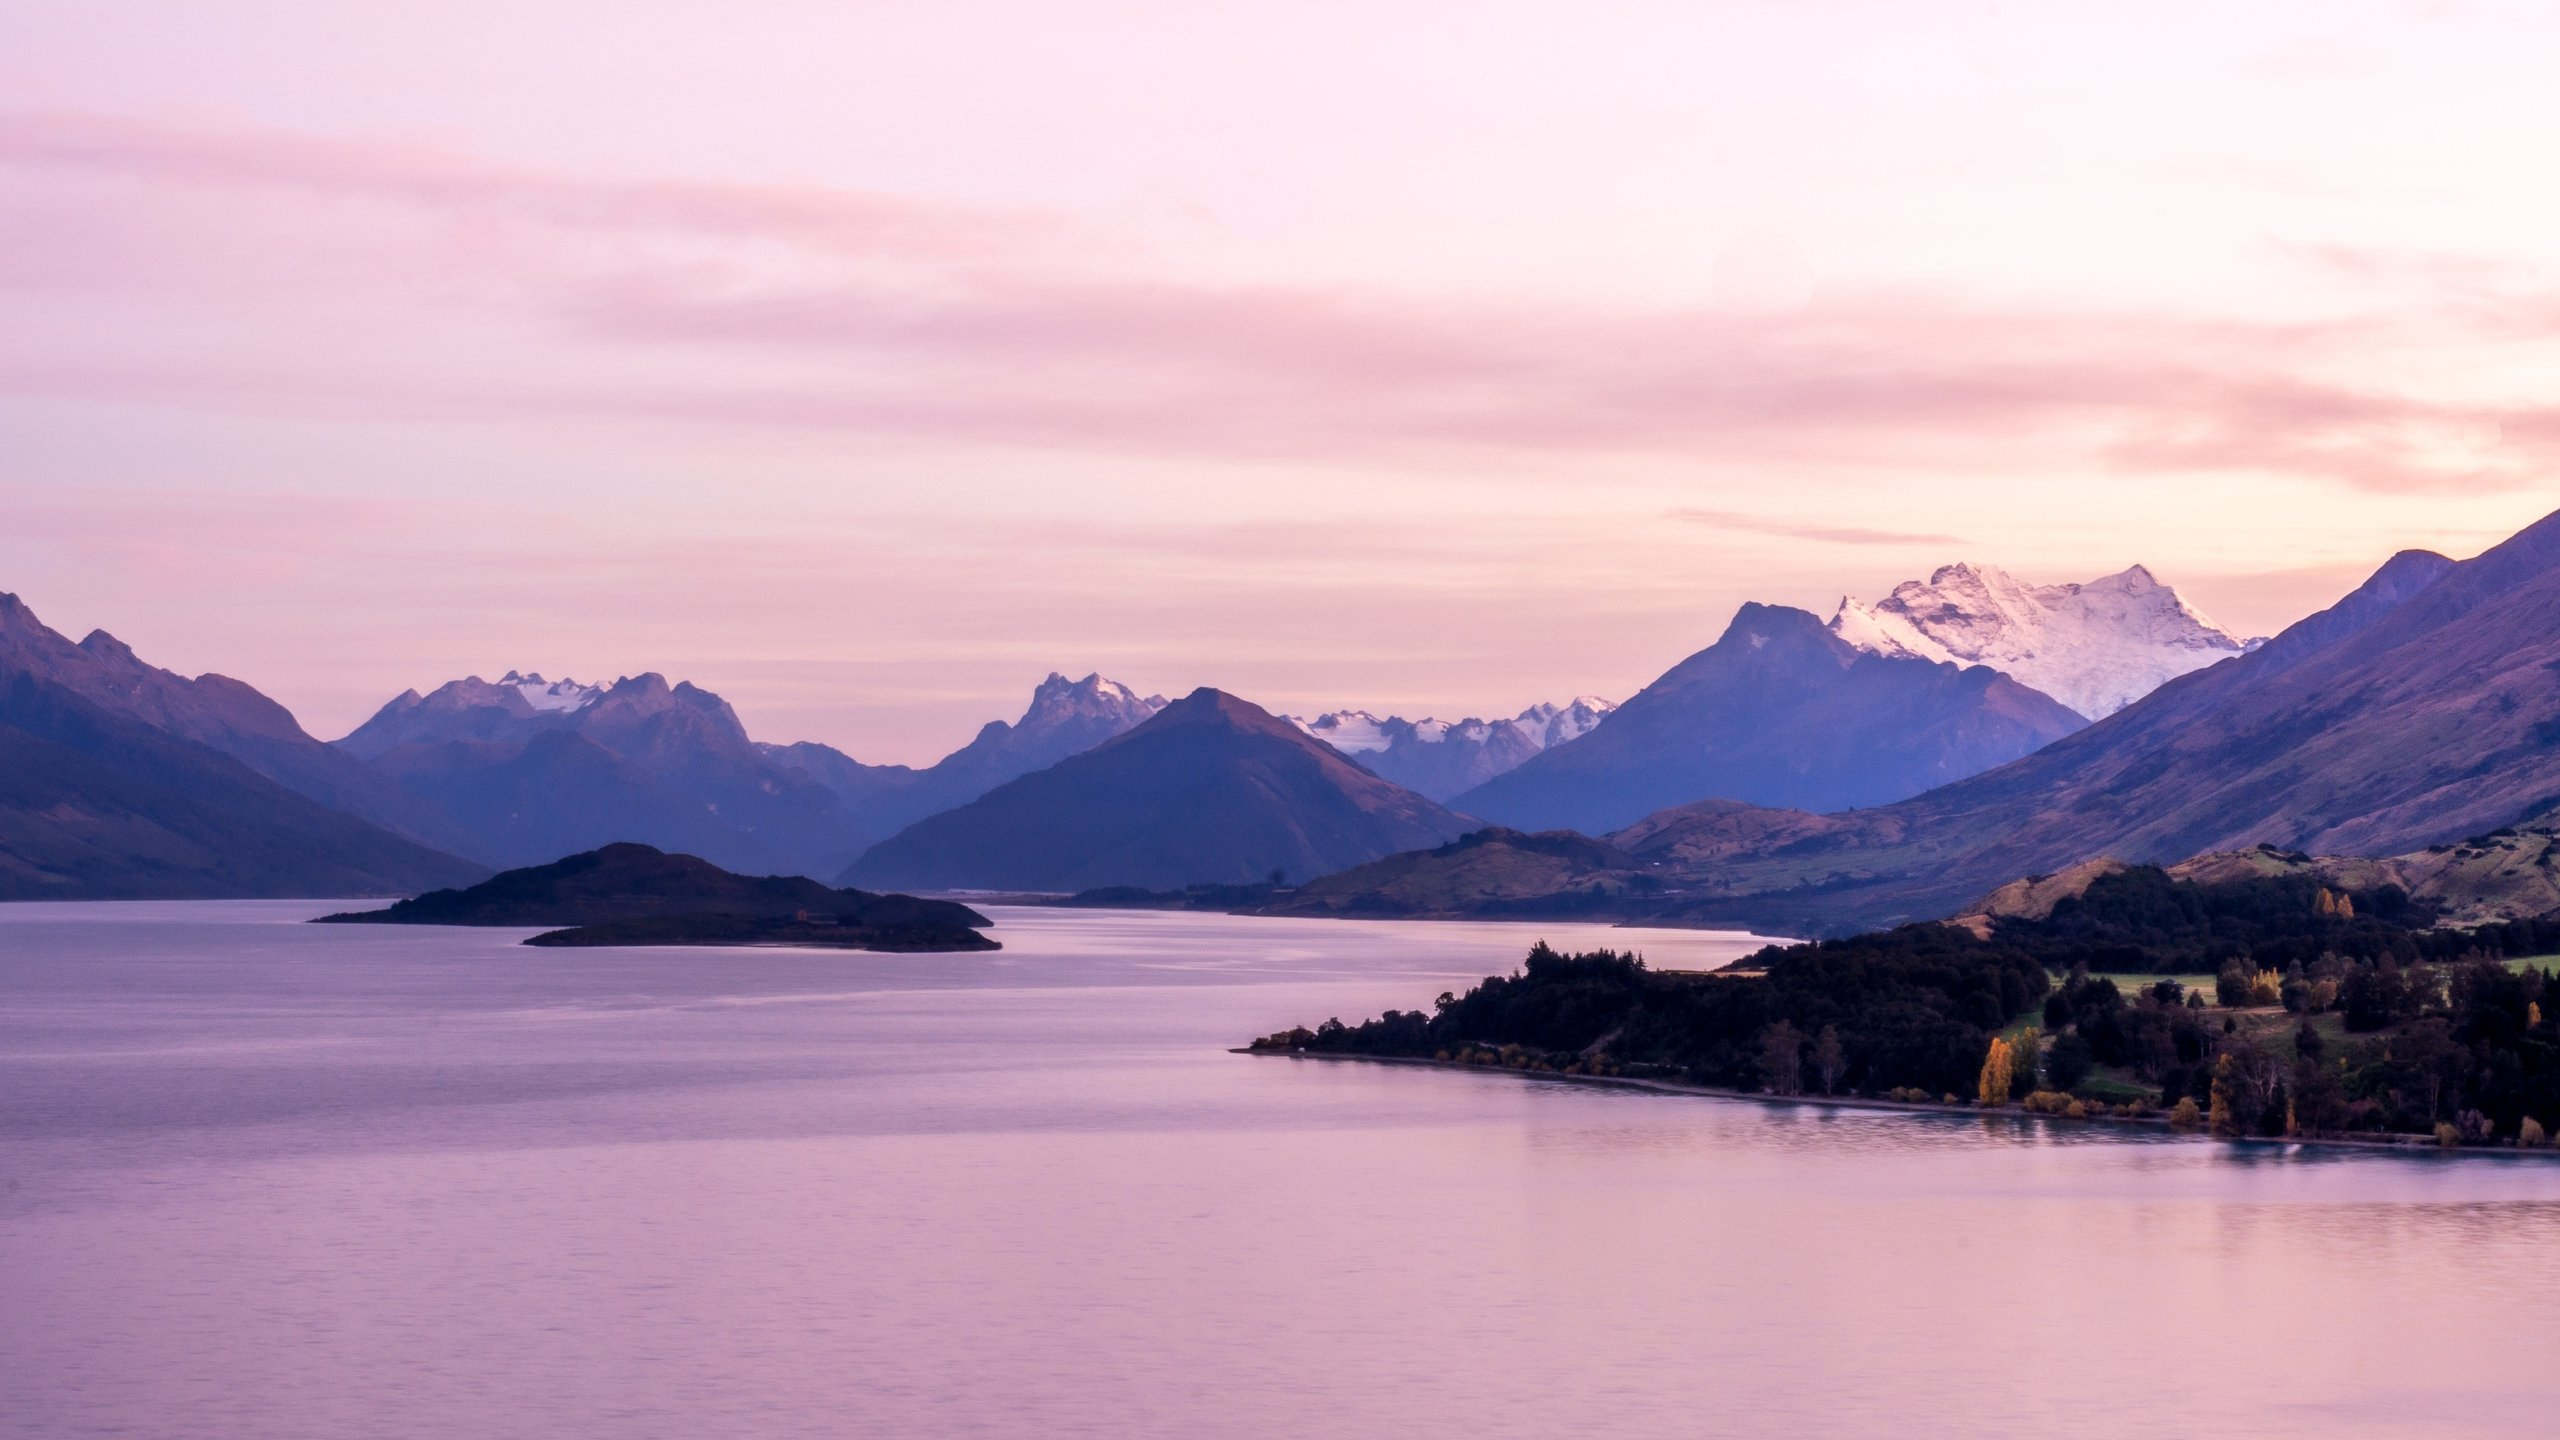 Queenstown 4k Wallpapers For Your Desktop Or Mobile Screen Free And Easy To Download